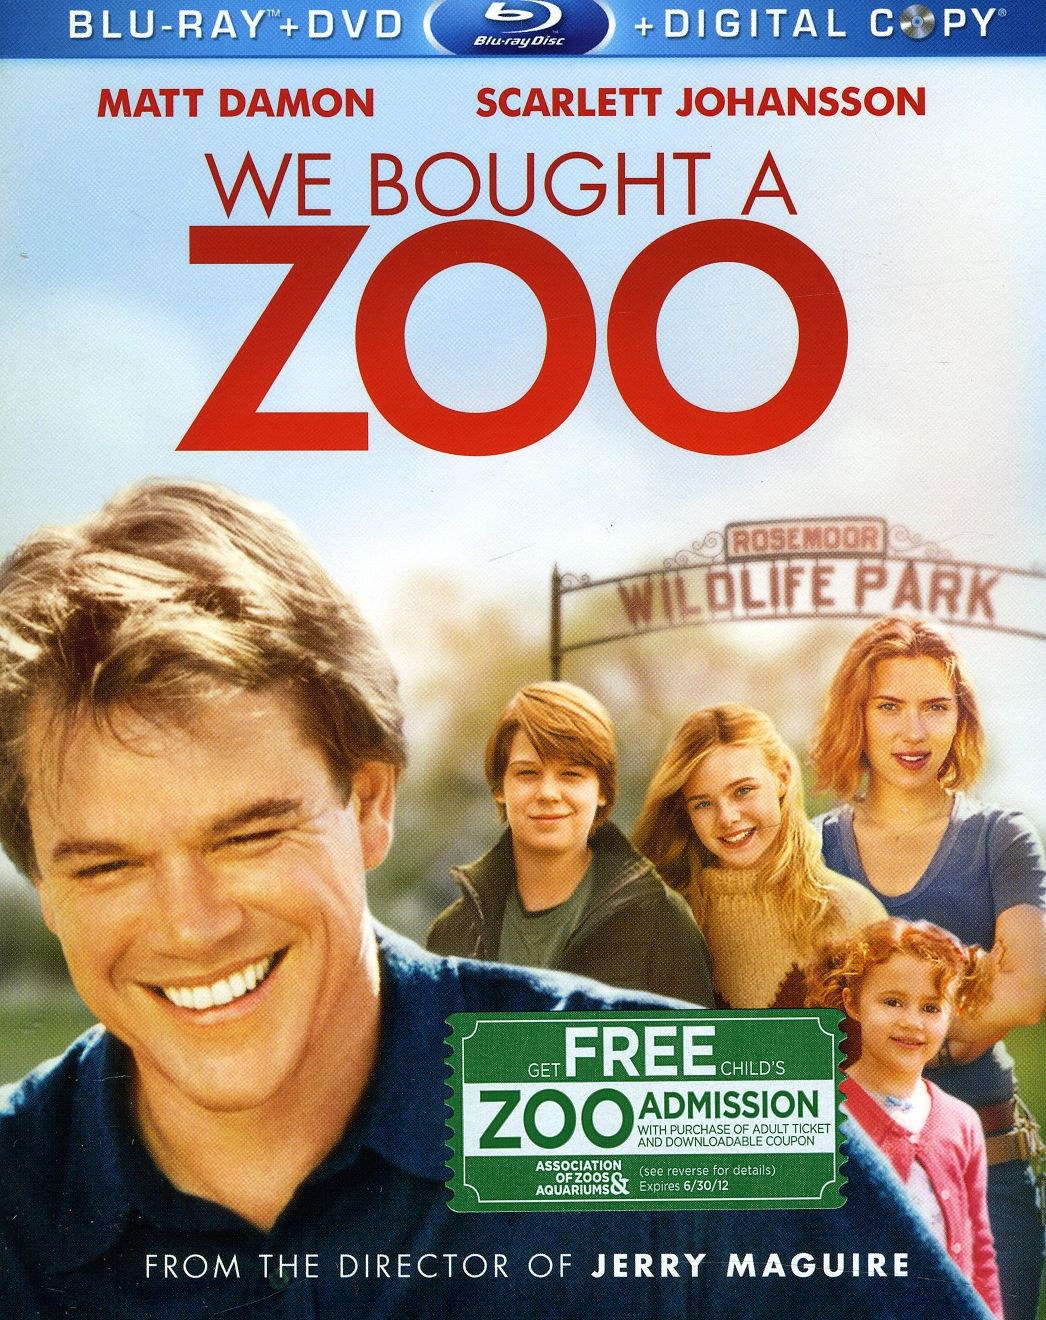 We Bought A Zoo (Blu-ray/DVD)